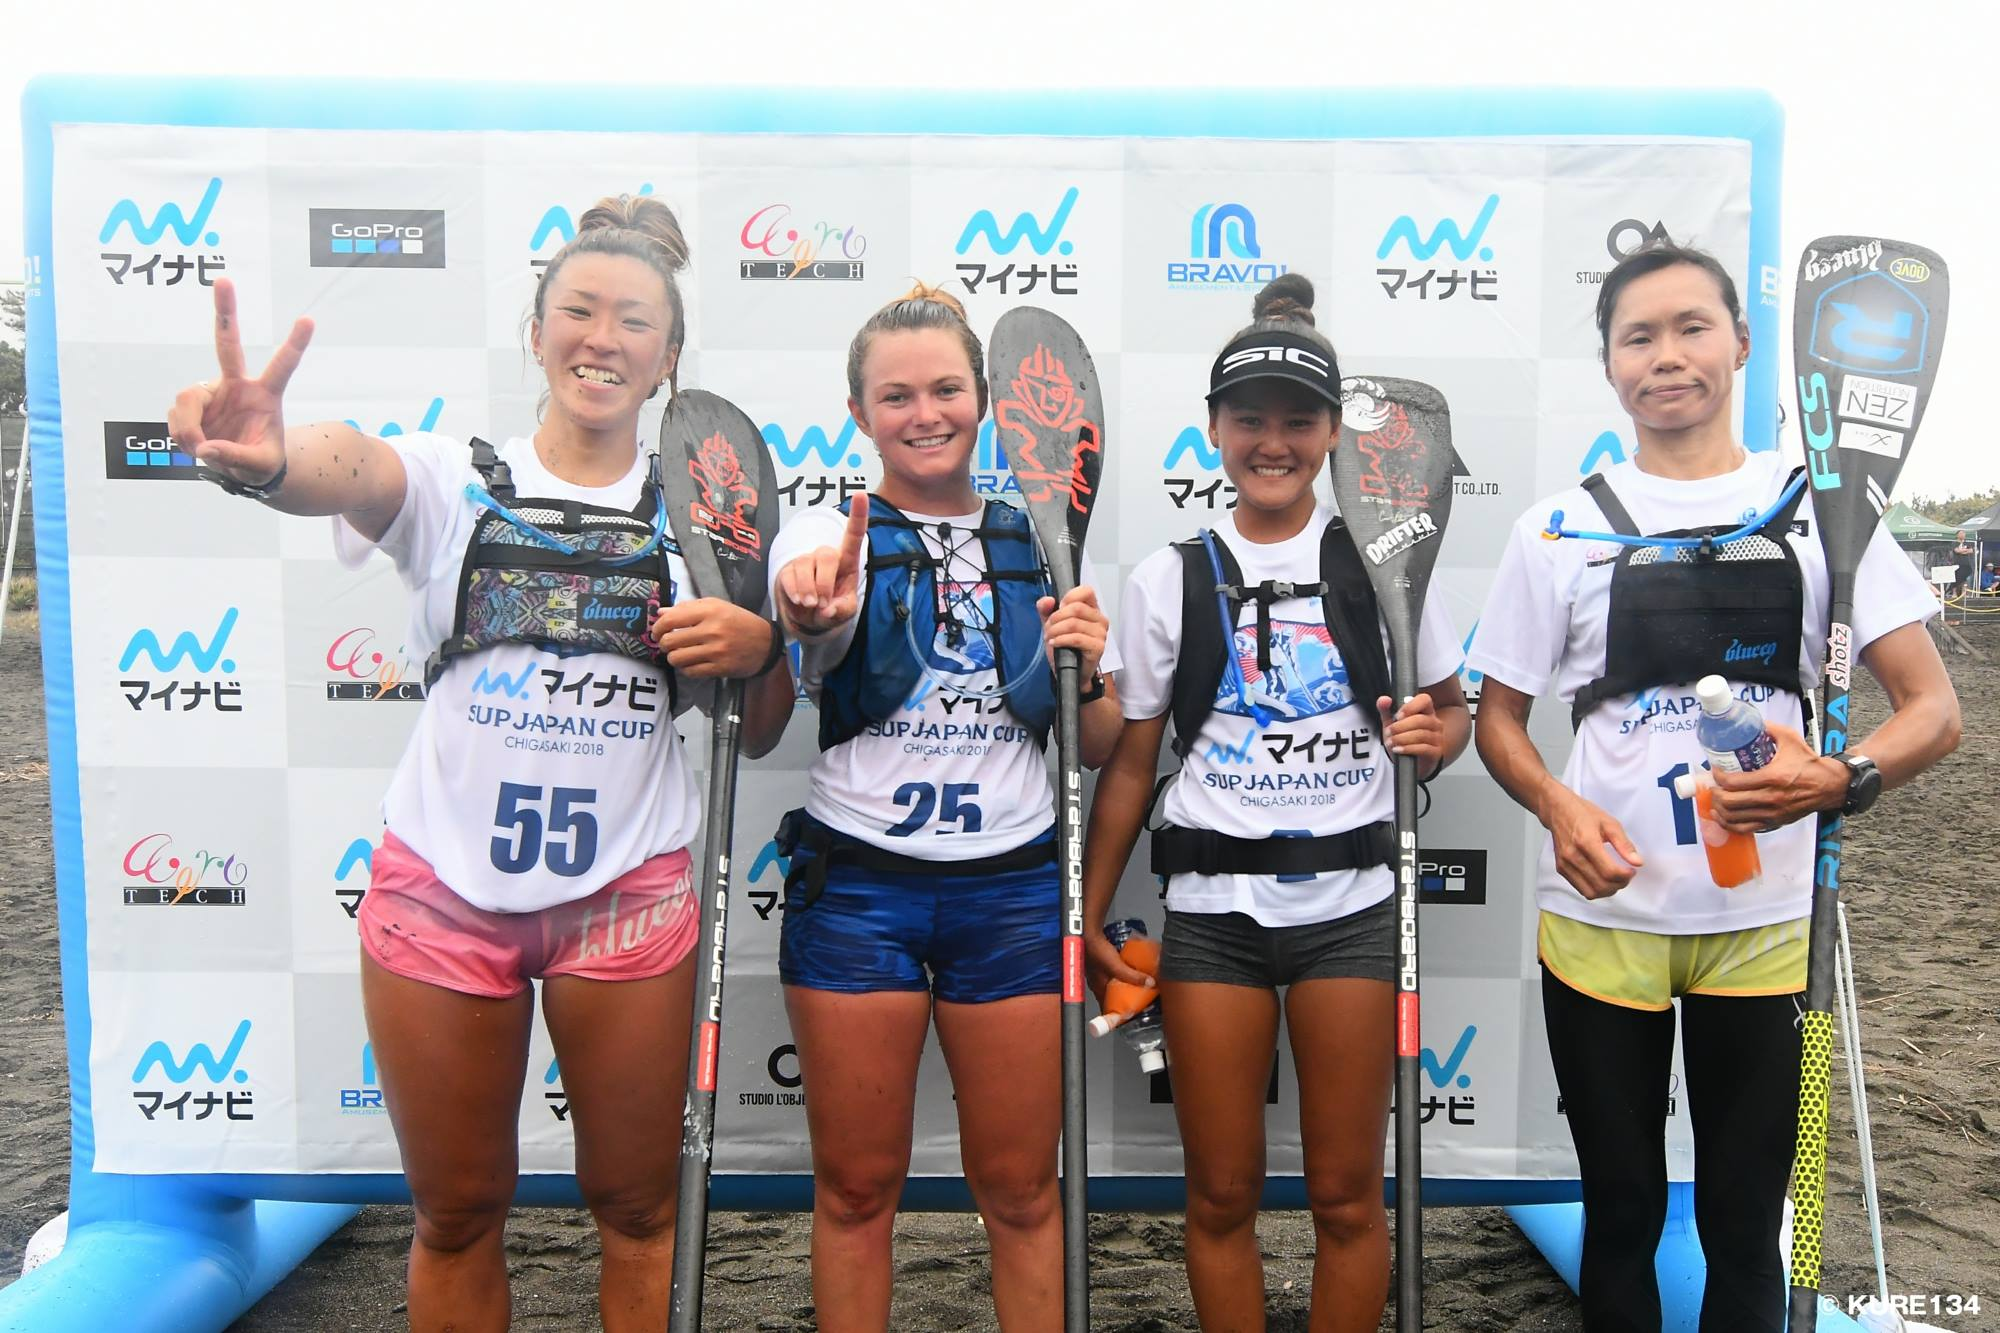 The-Paddle-League-SUP-Japan-Cup-Saturday-10K-race-@kure134-4